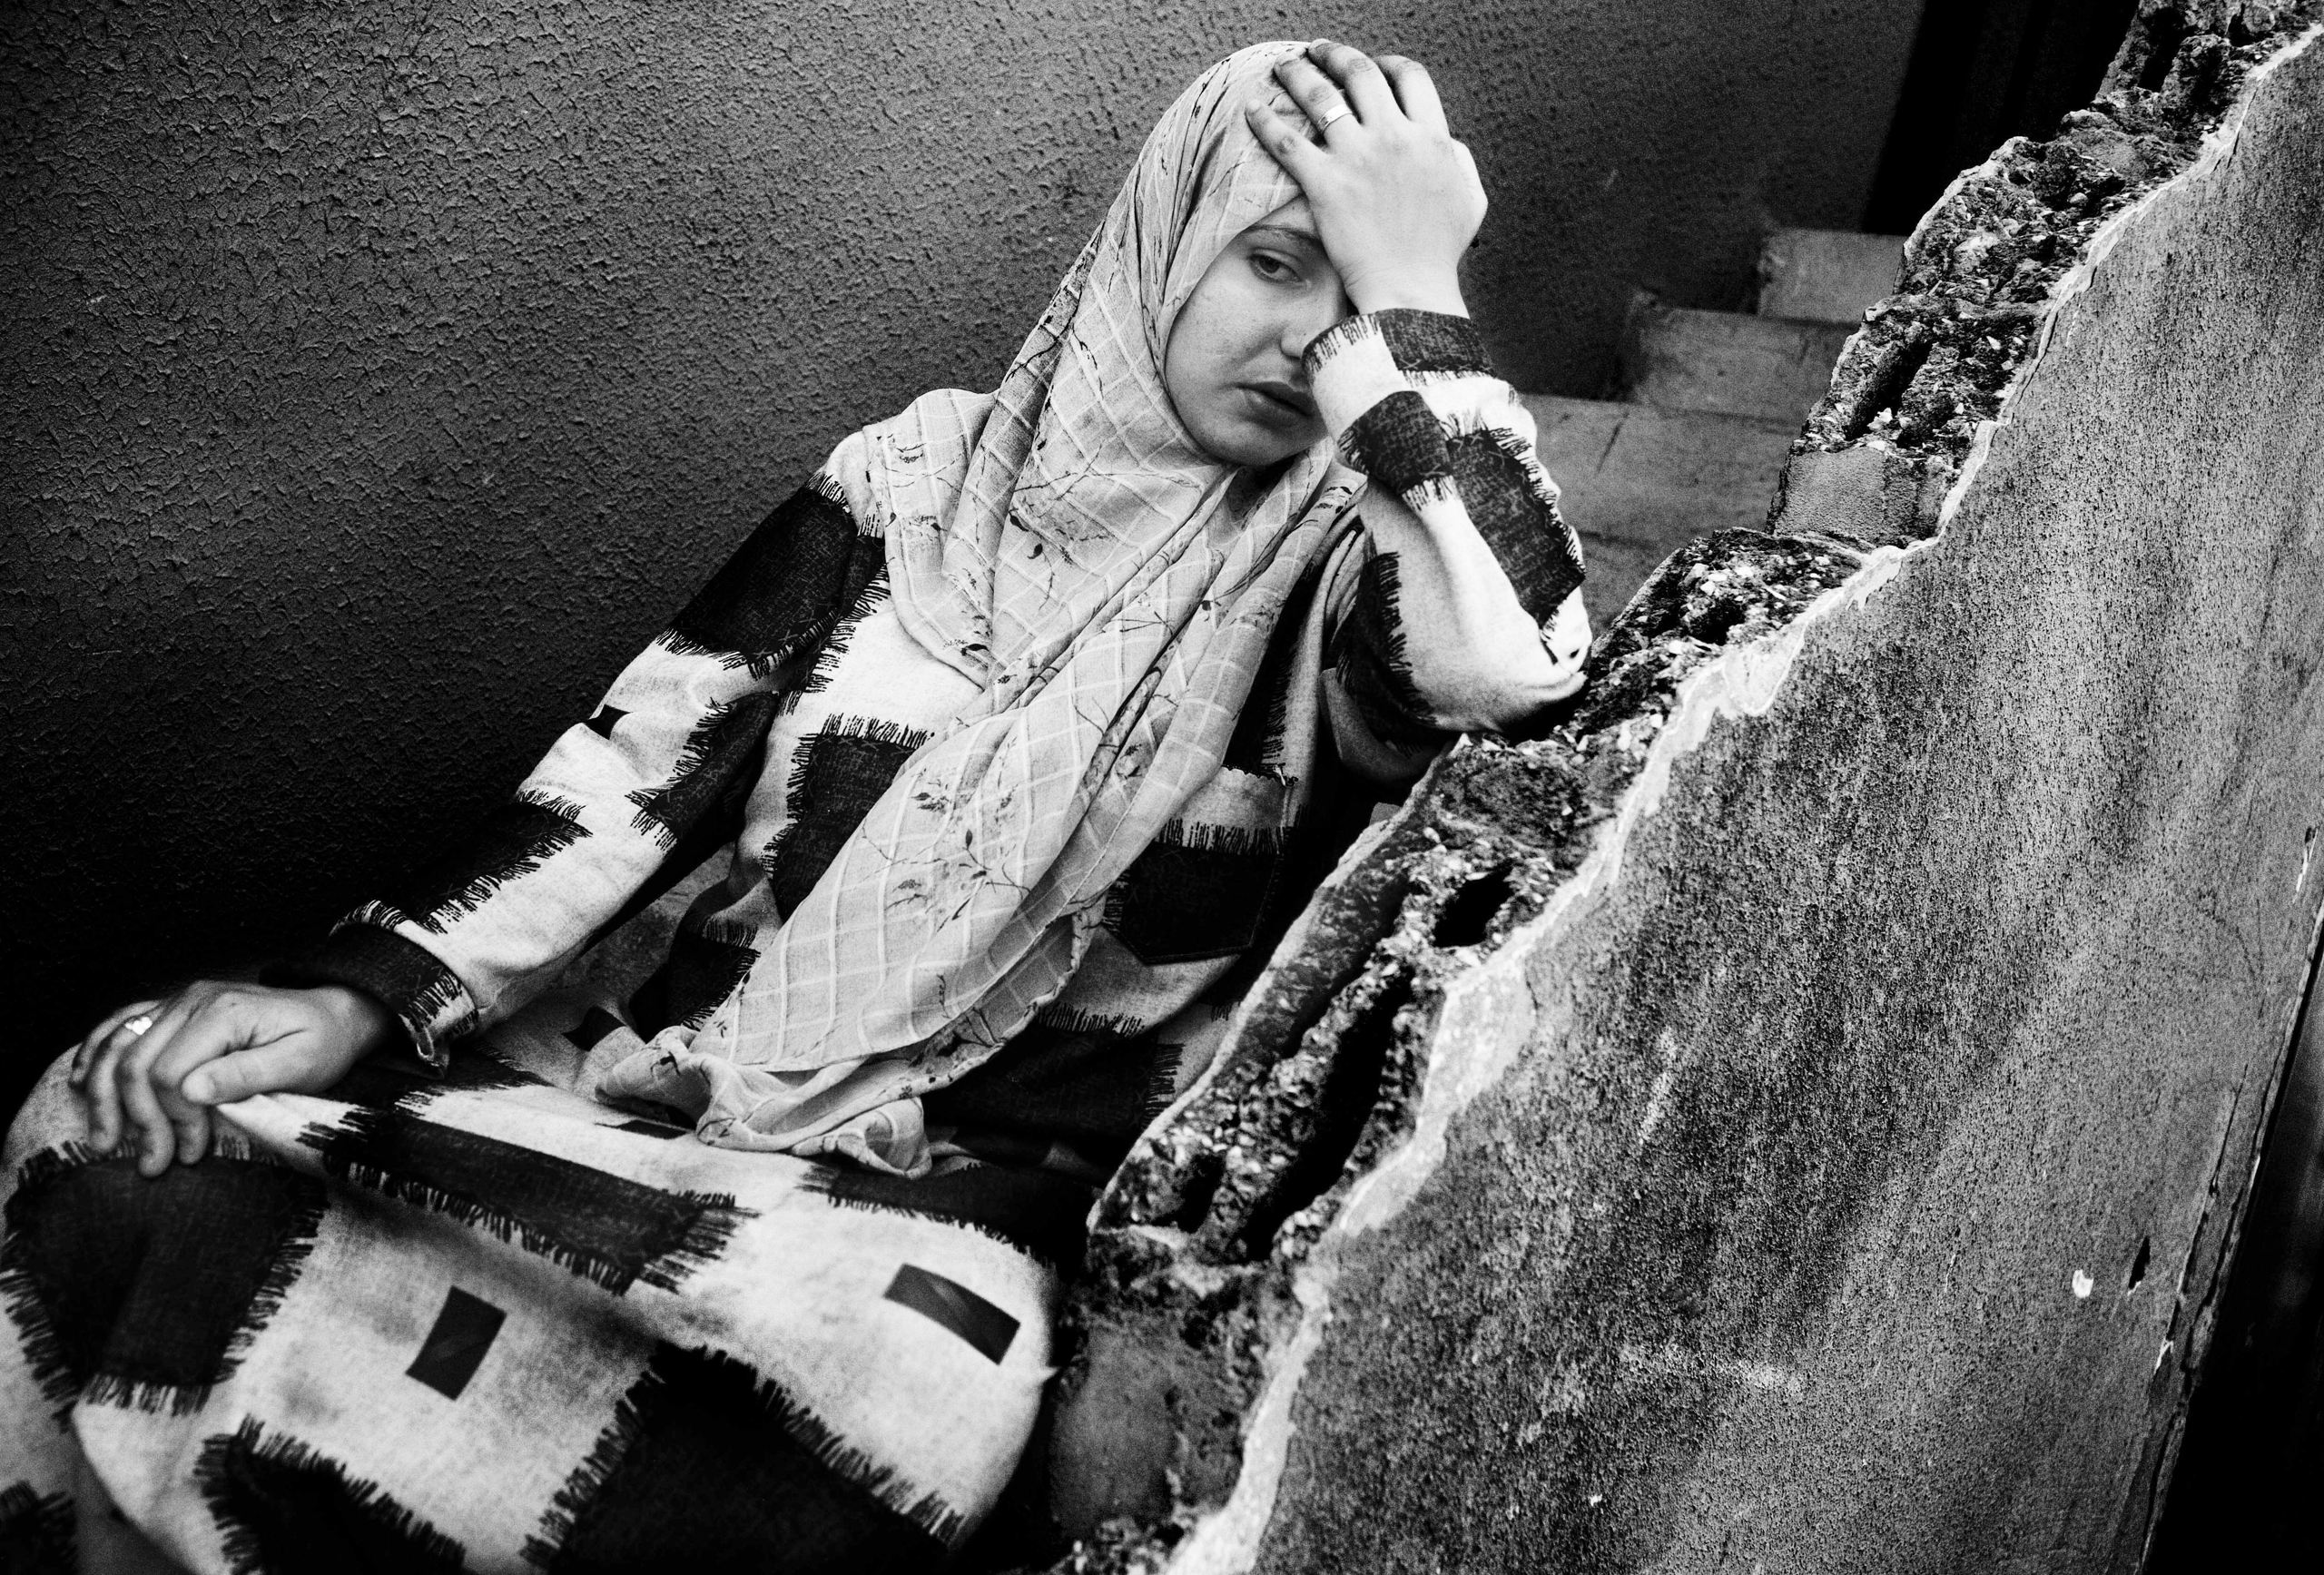 A woman desperate to flee the village is sitting on the stairs of her house. Ramesh, Lebanon, July 2006.